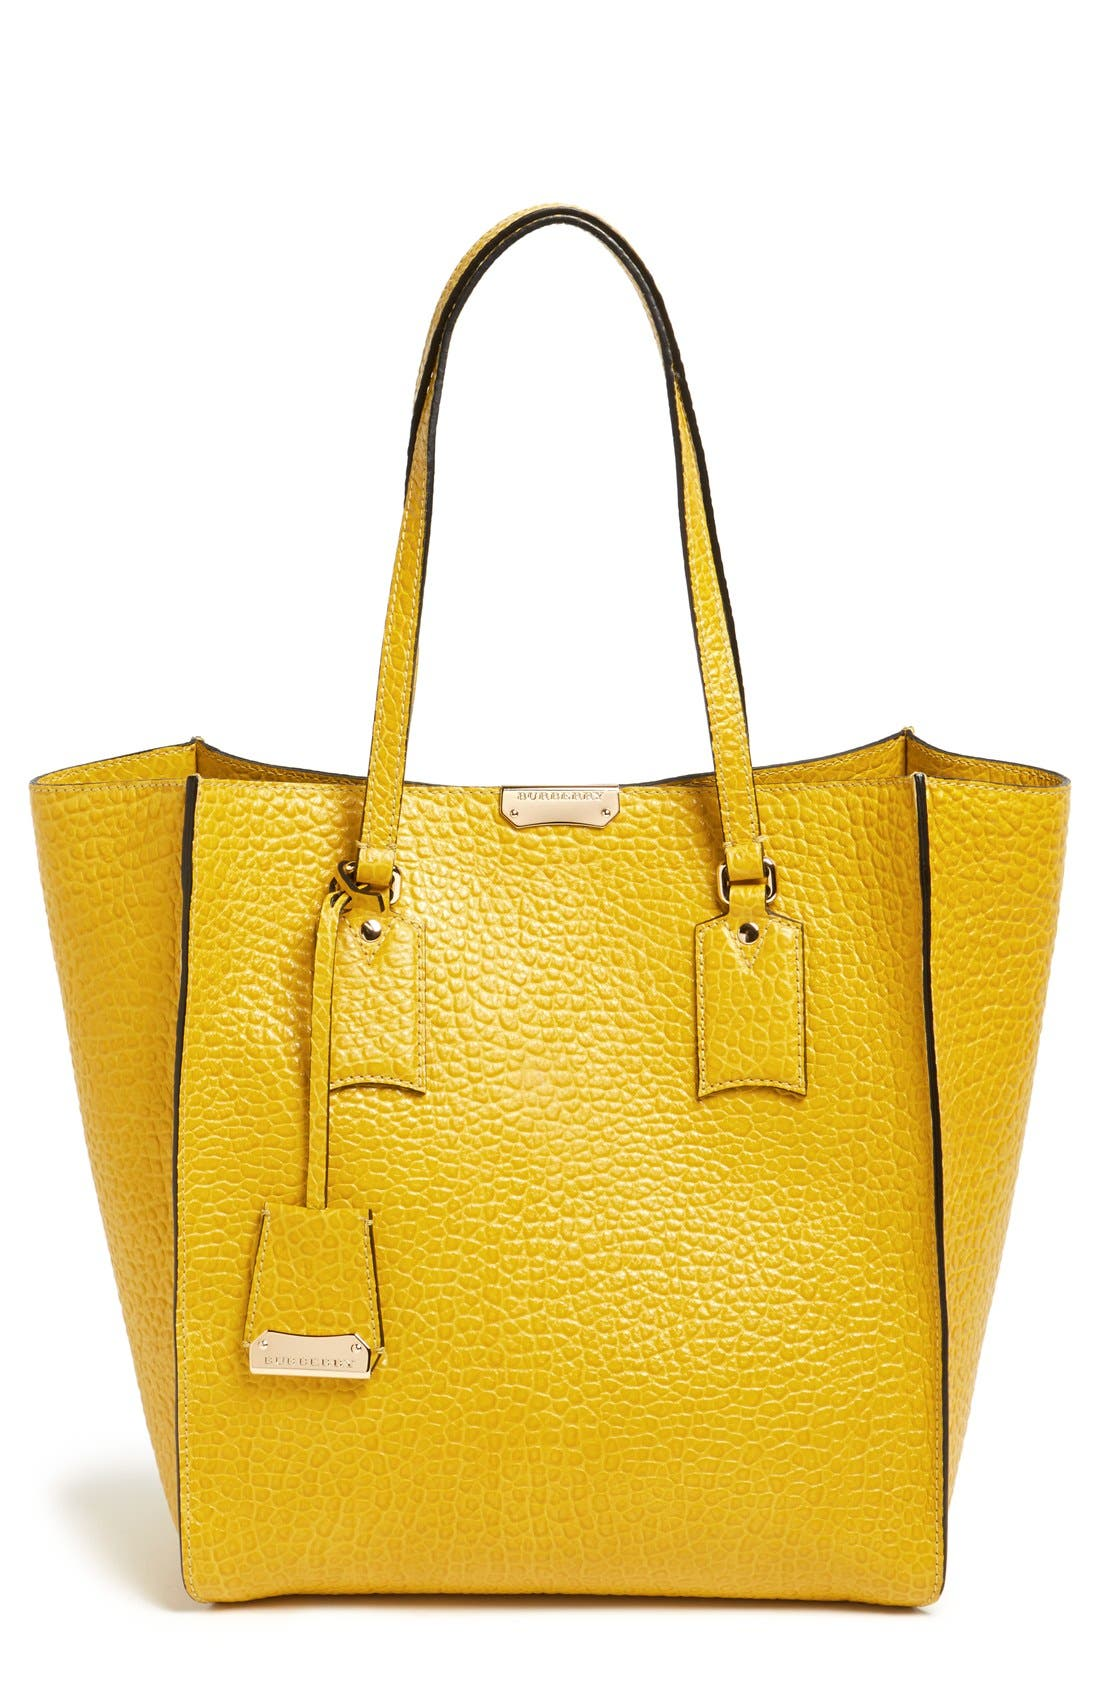 Alternate Image 1 Selected - Burberry 'Medium Woodbury' Leather Tote